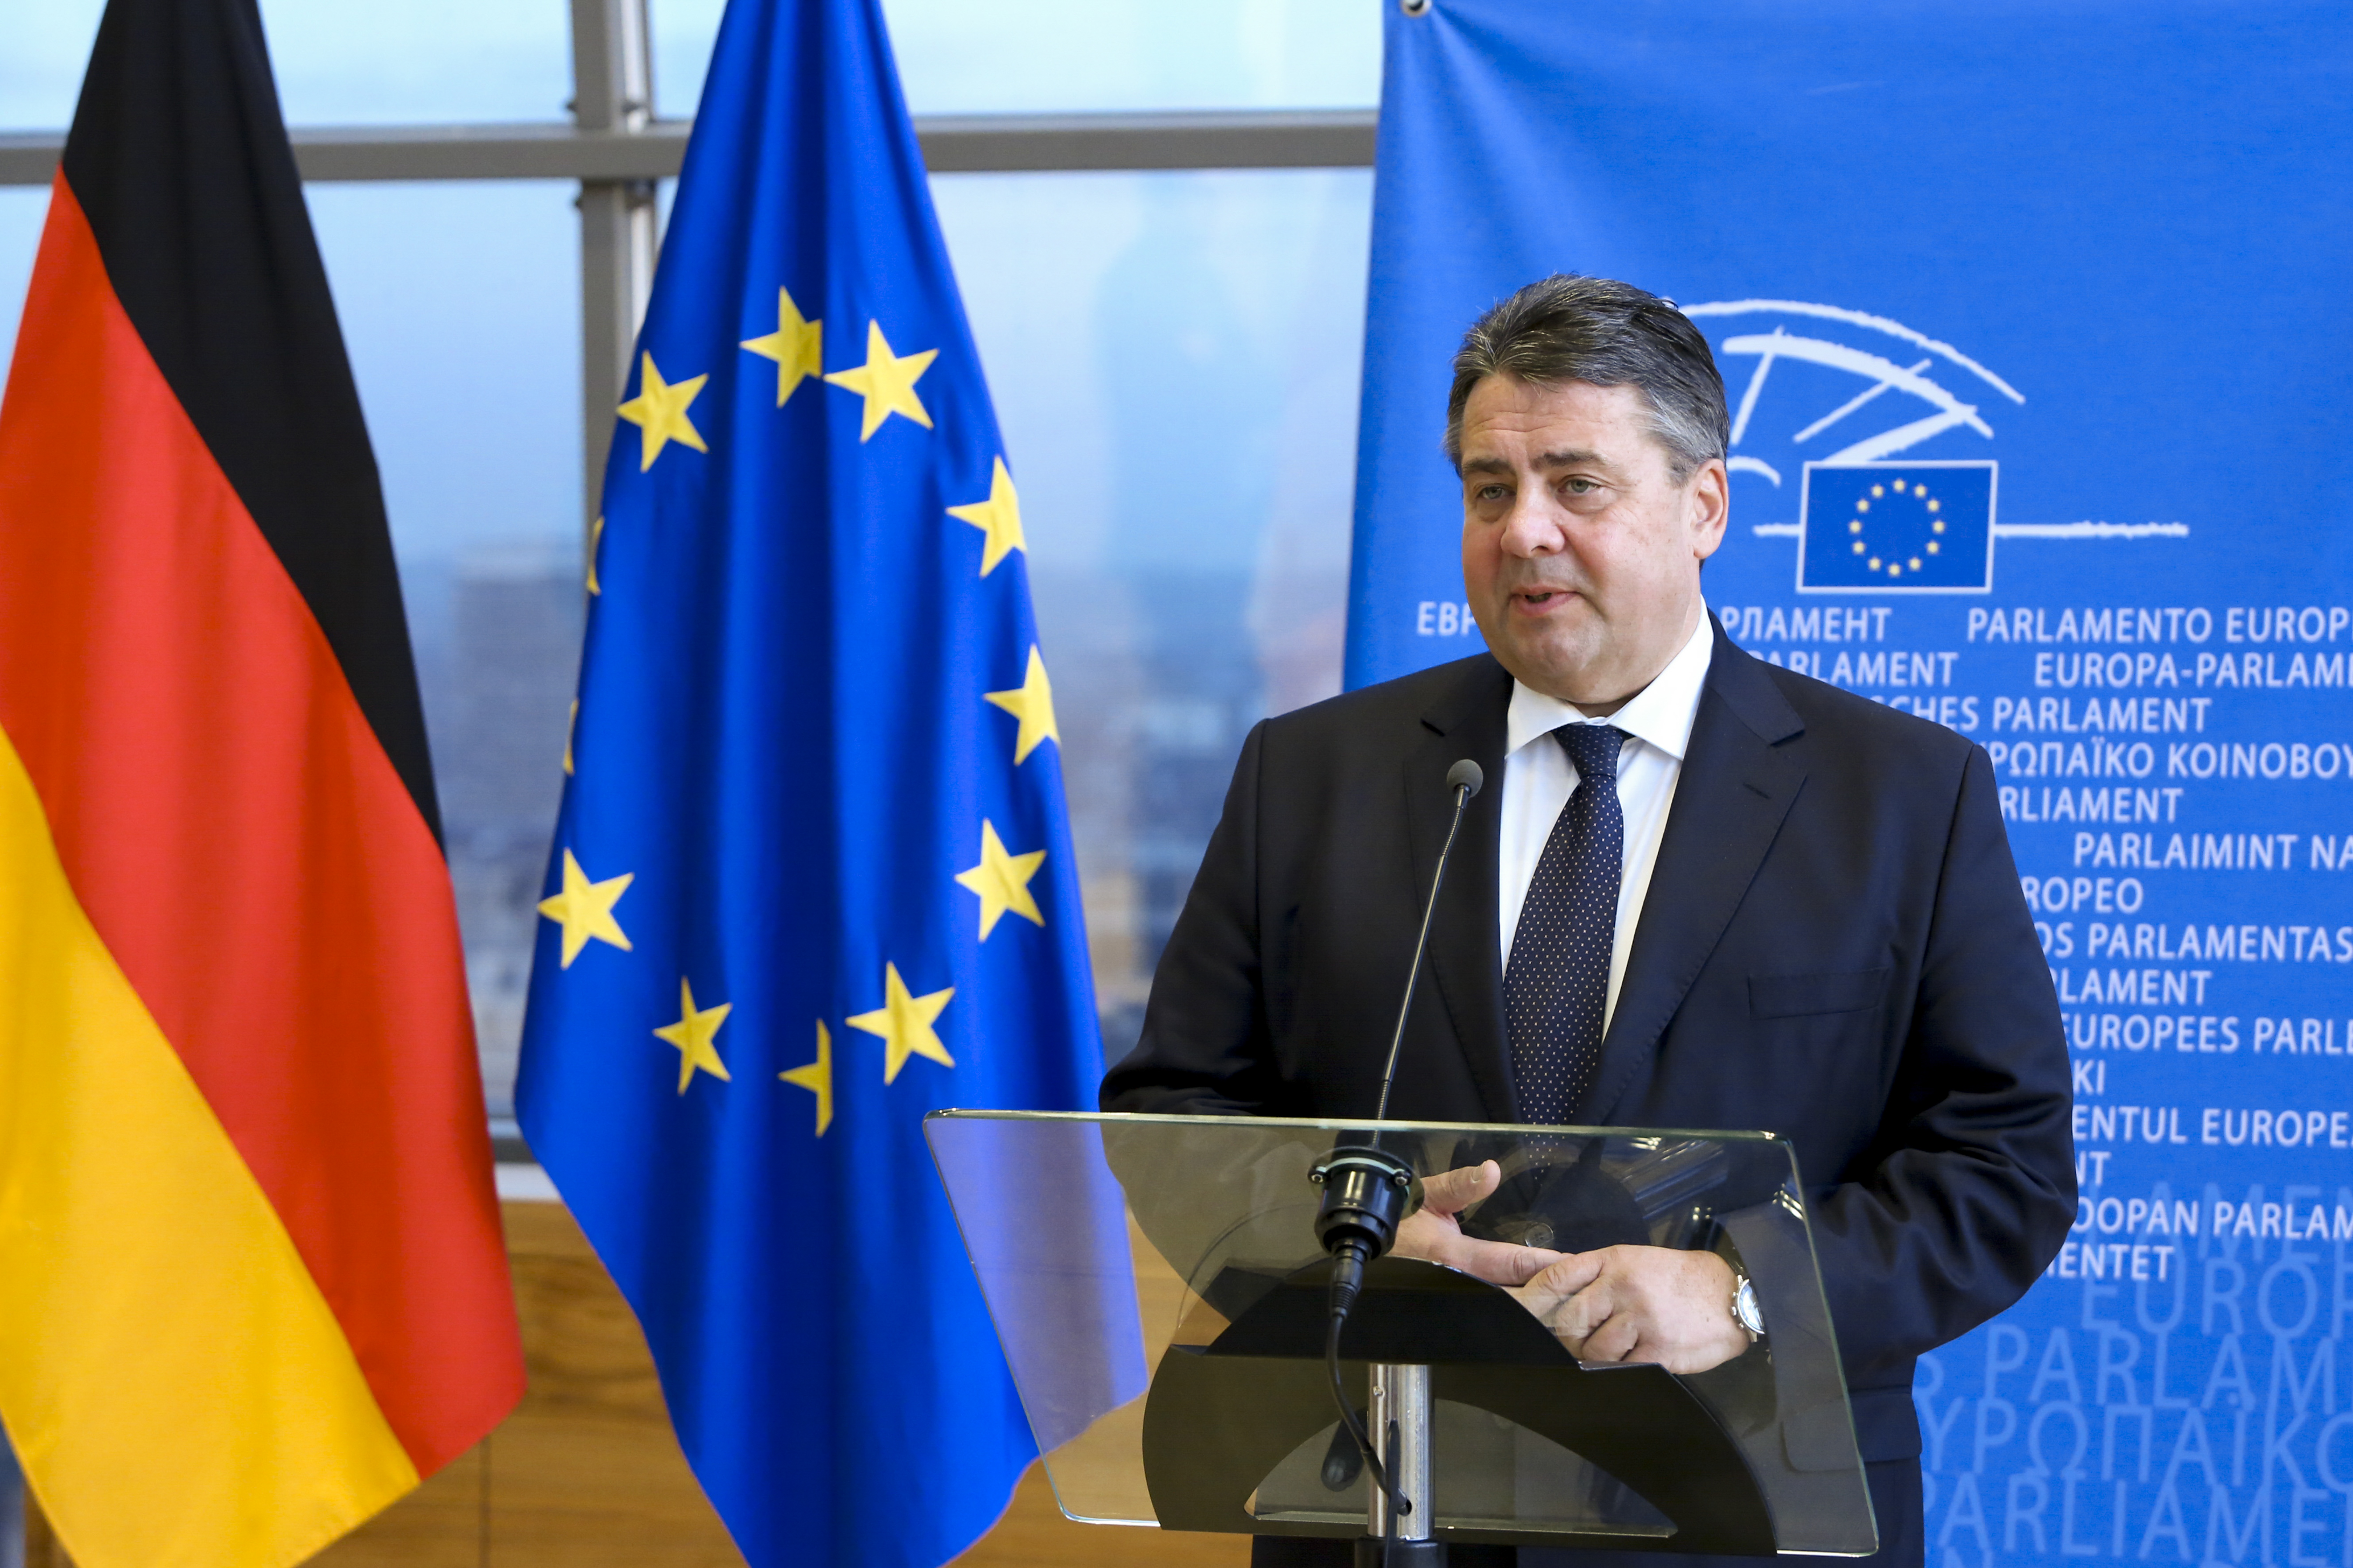 FM Conference in Berlin: Accelerating progress in the